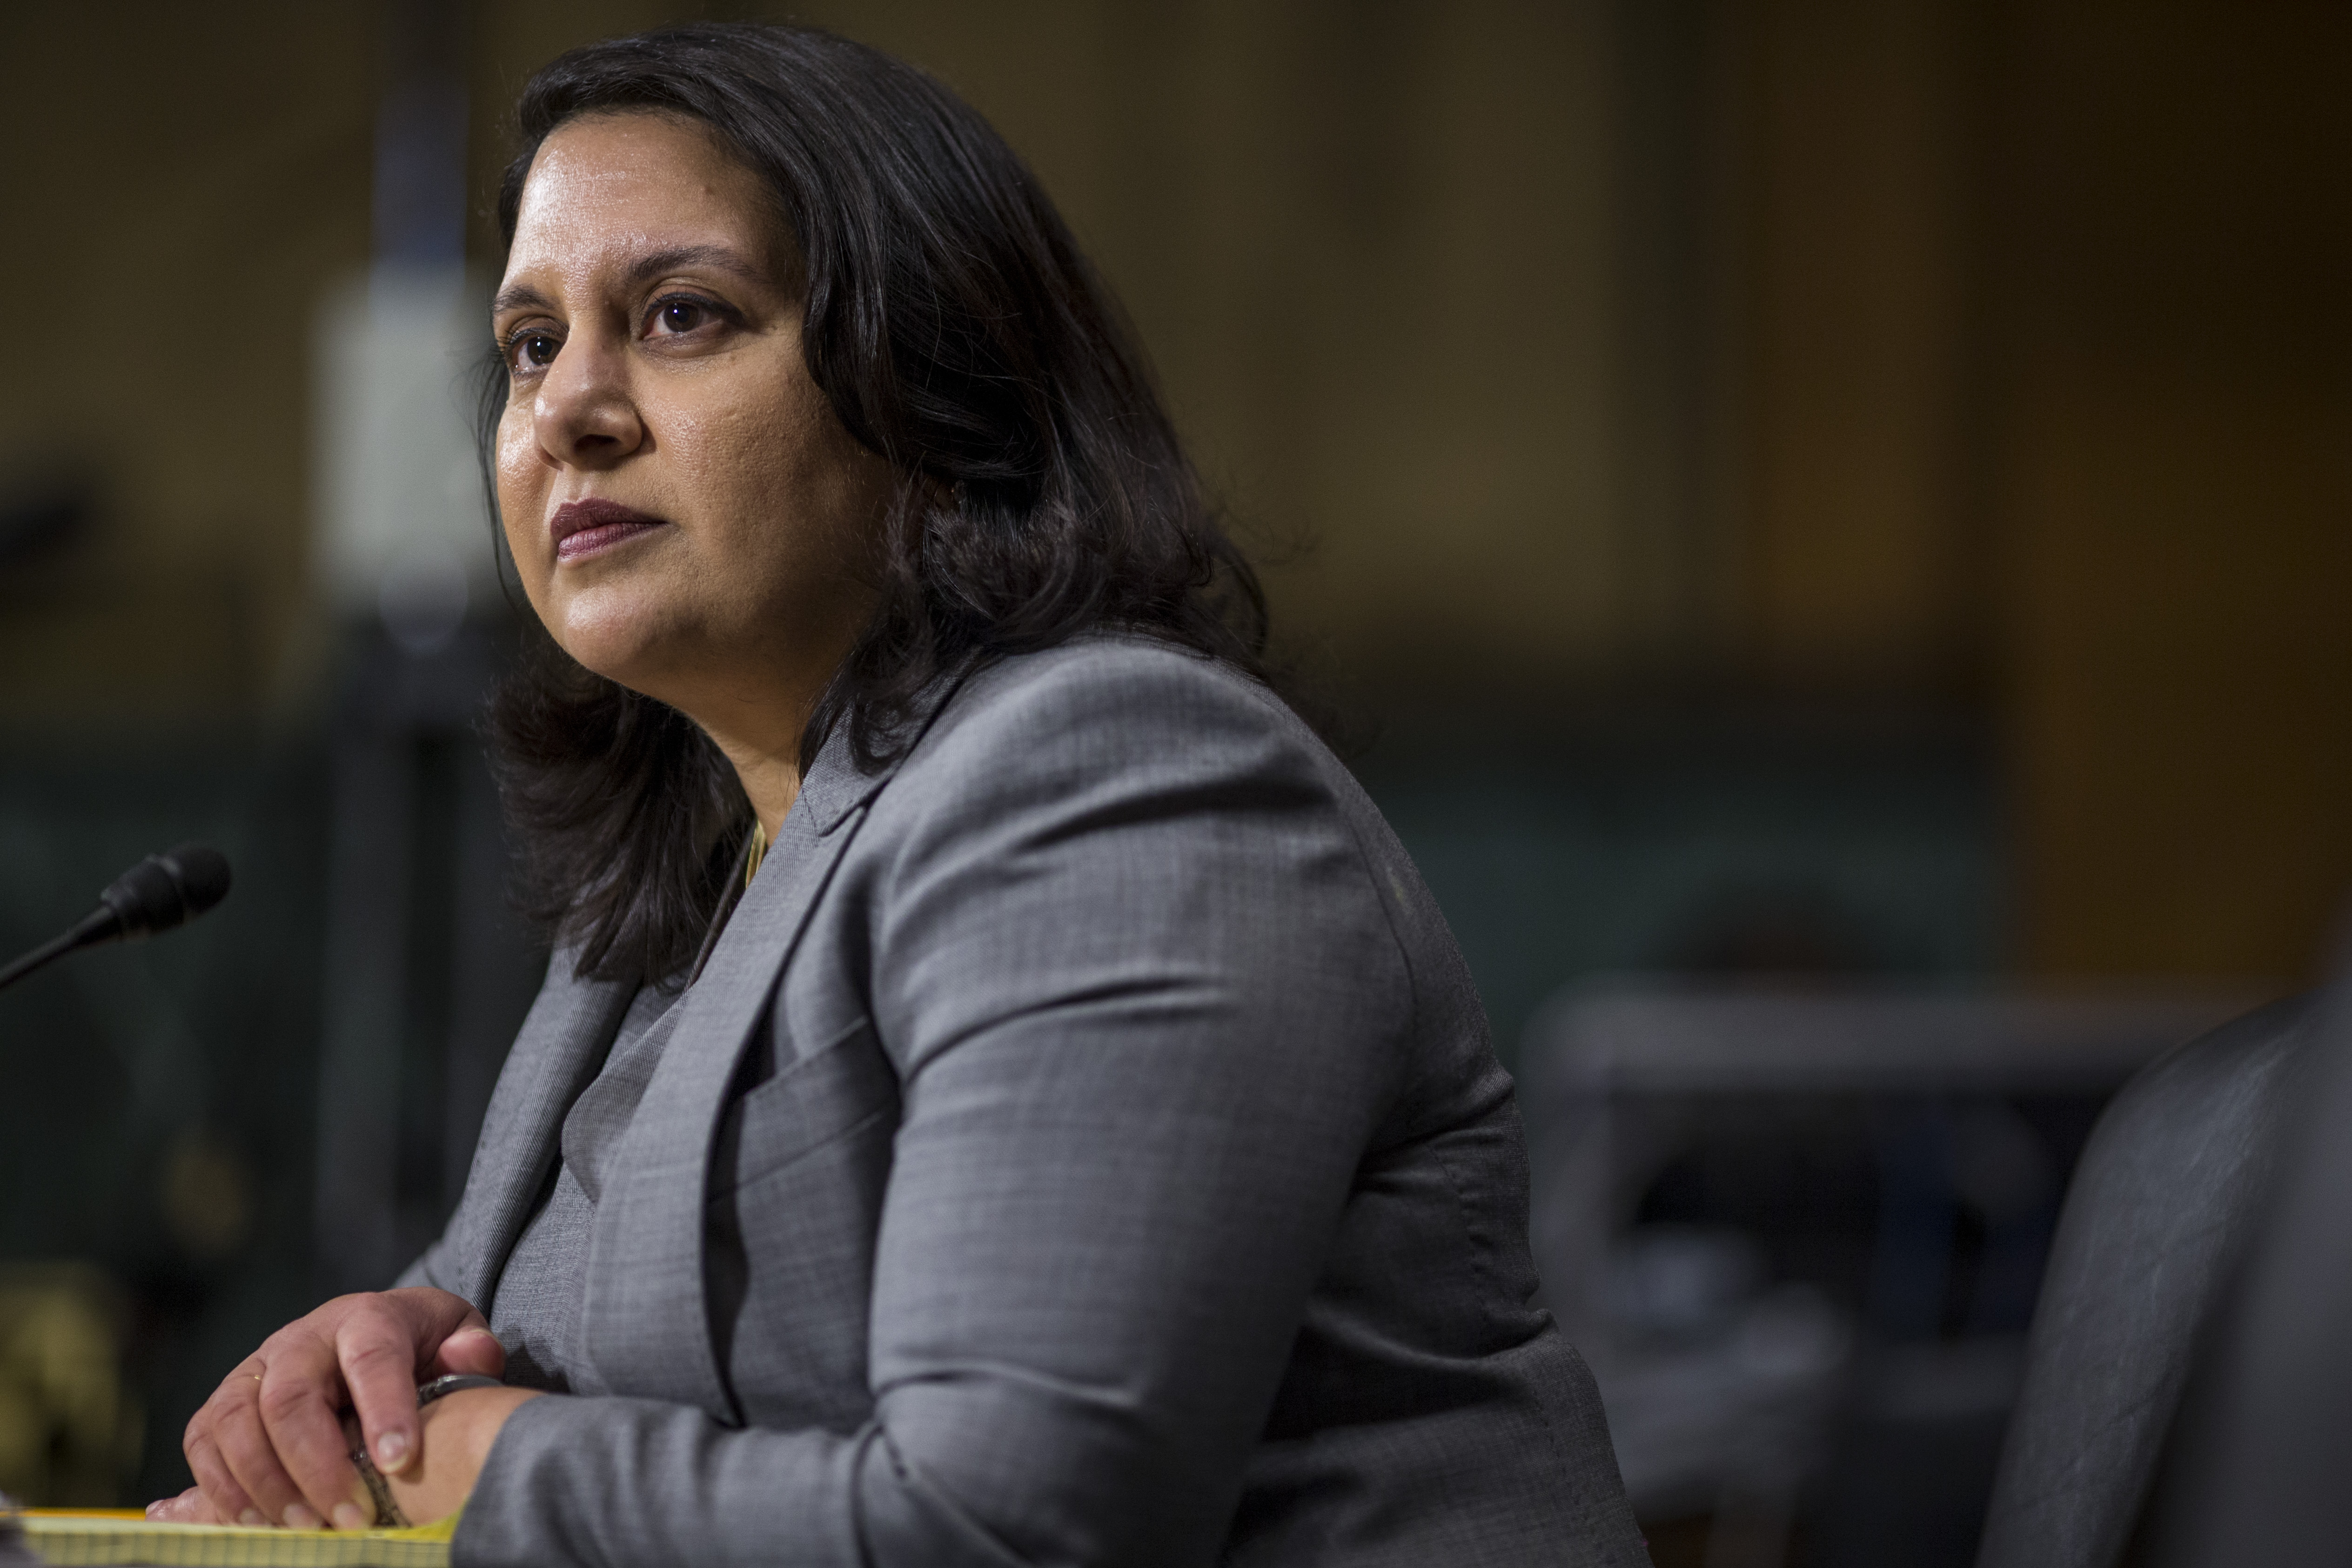 Neomi Rao, President Donald Trump's nominee for the U.S. Court of Appeals for the D.C. Circuit, testifies during a Senate Judiciary confirmation hearing on February 5, 2019. (Zach Gibson/Getty Images)